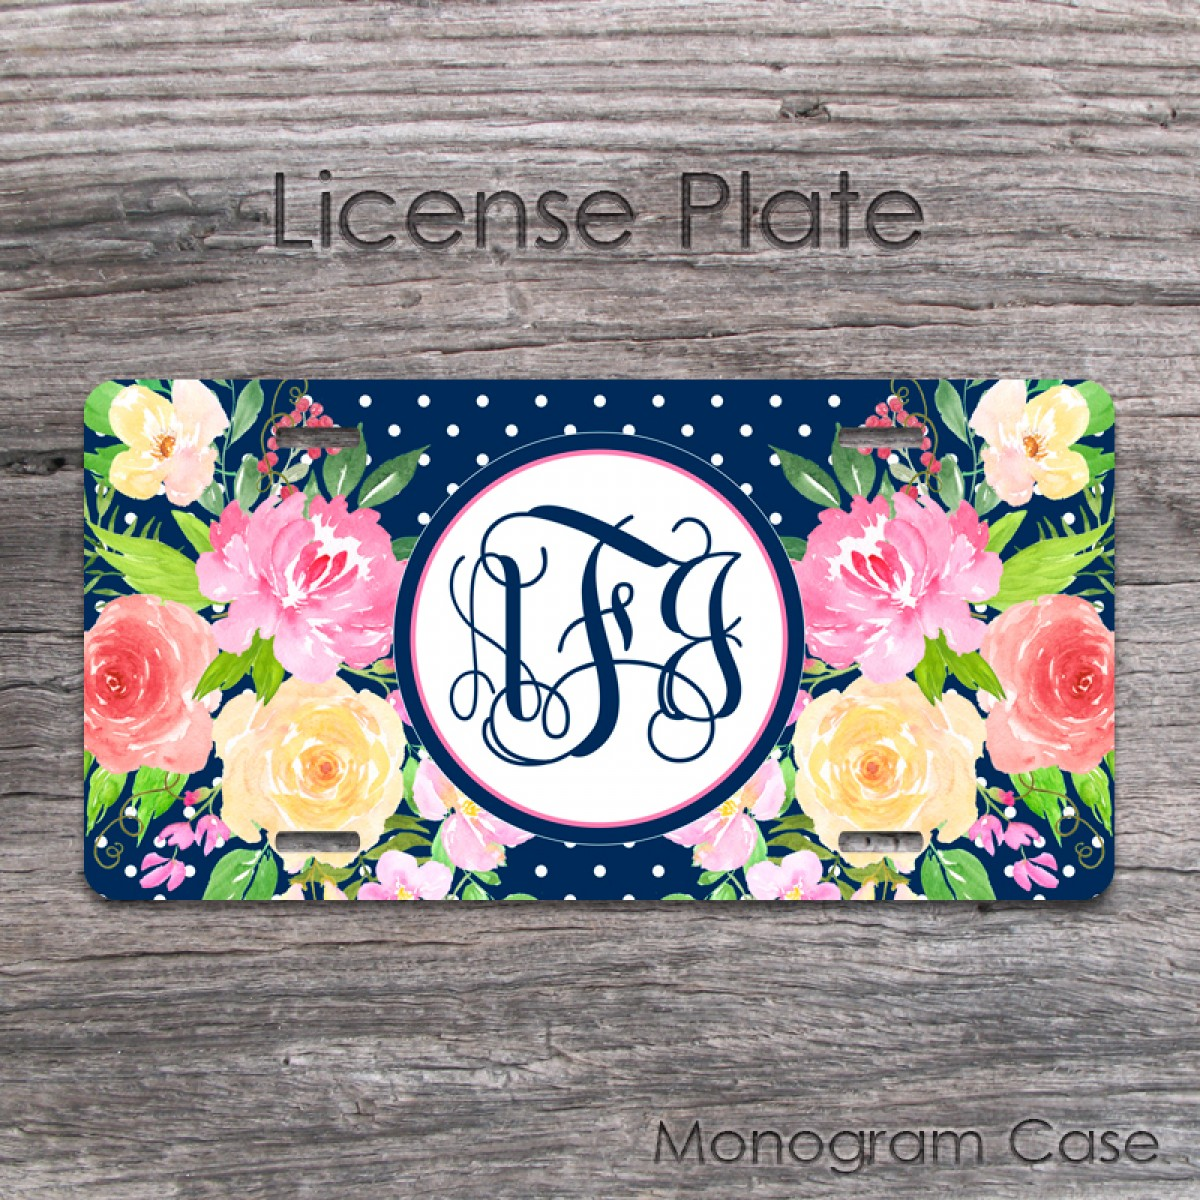 Personalized Front License Plates >> Personalized Watercolor Flower Front License Plate Or Frame